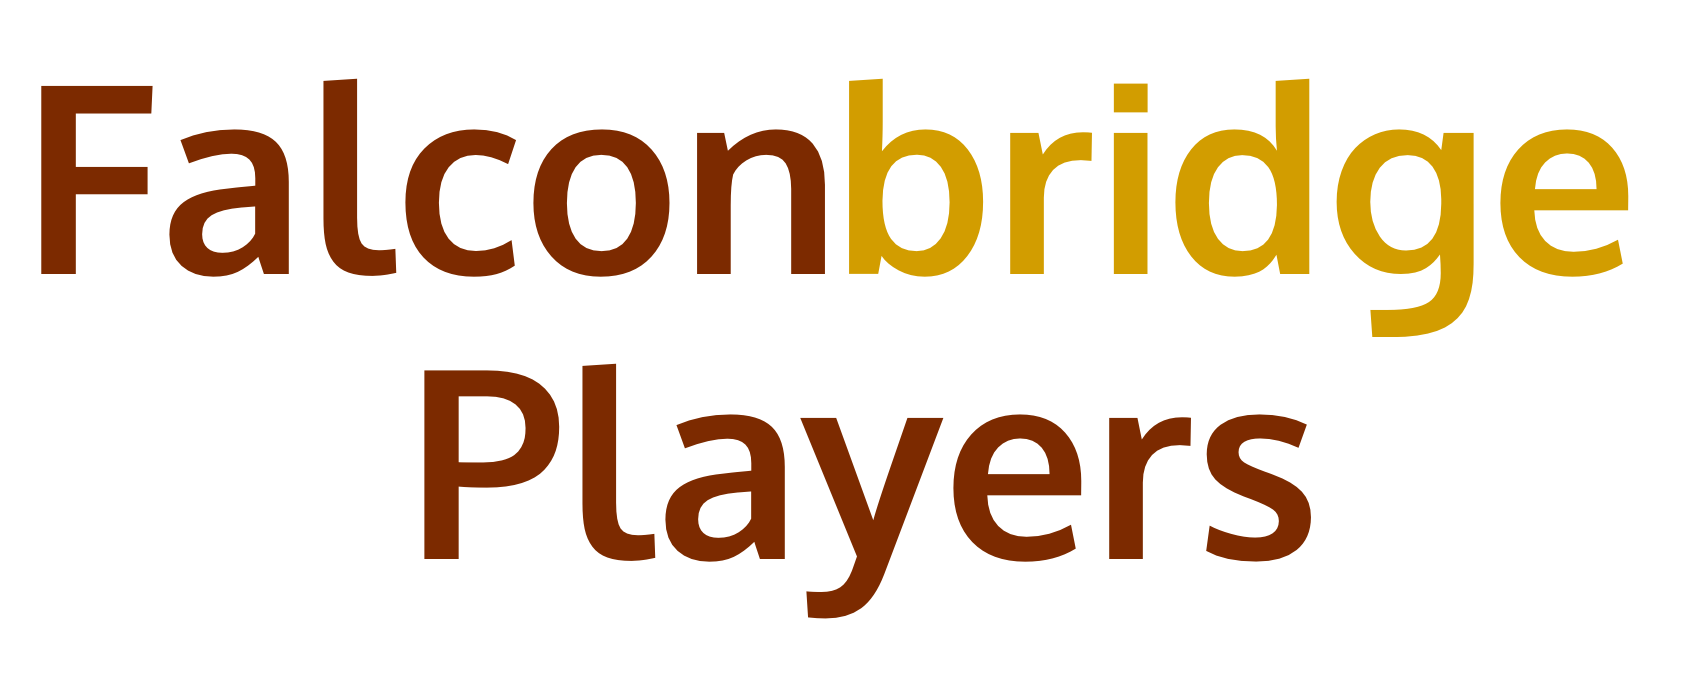 Falconbridge Players